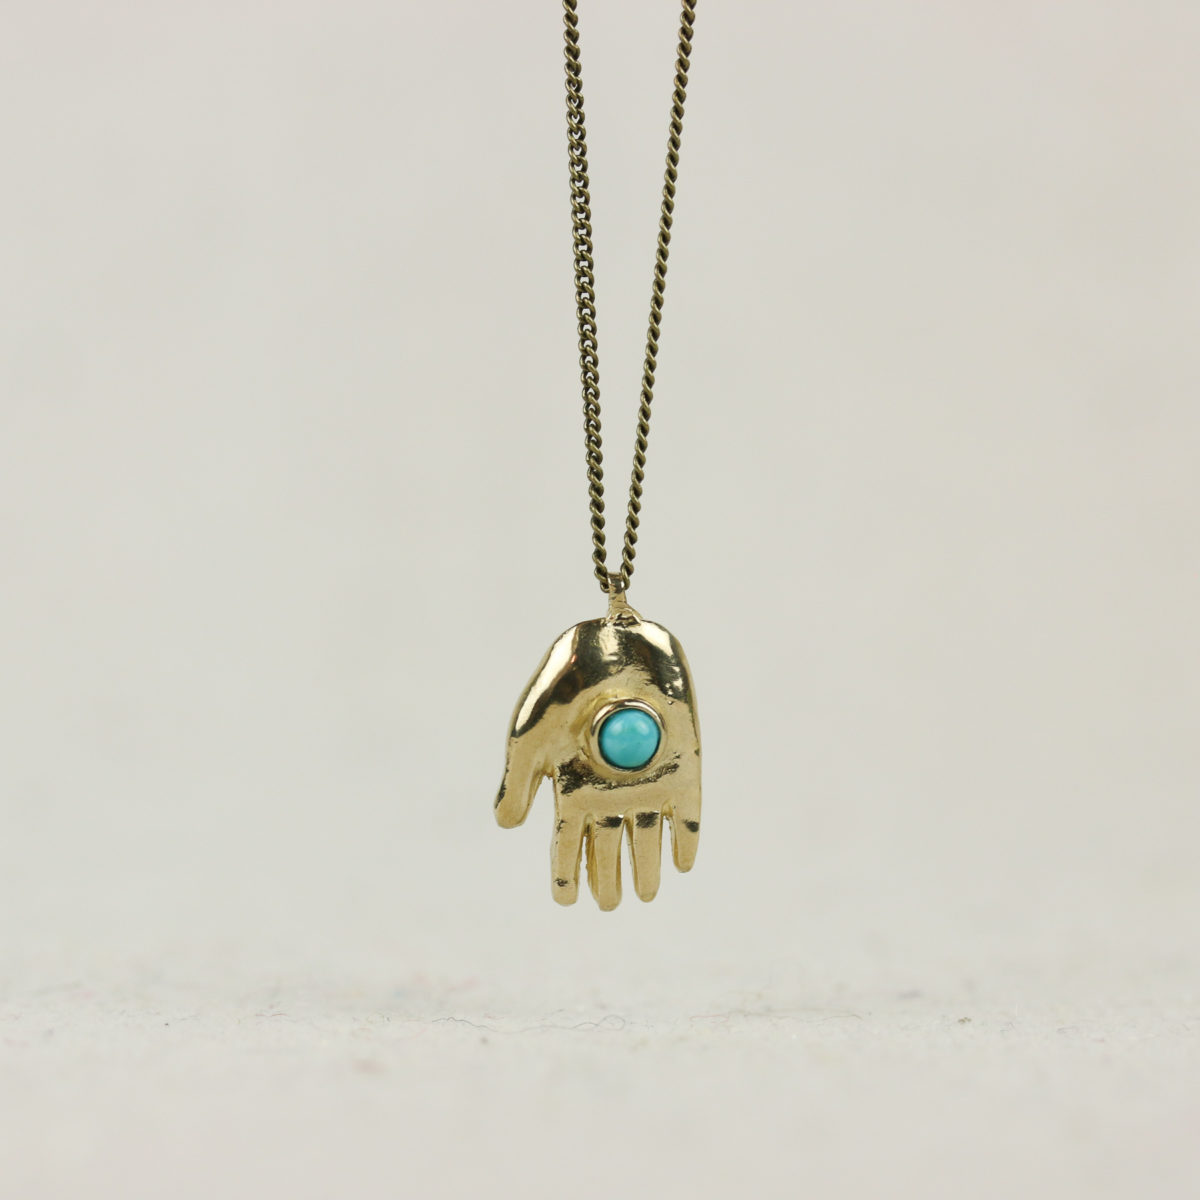 giver-necklace-with-turquoise